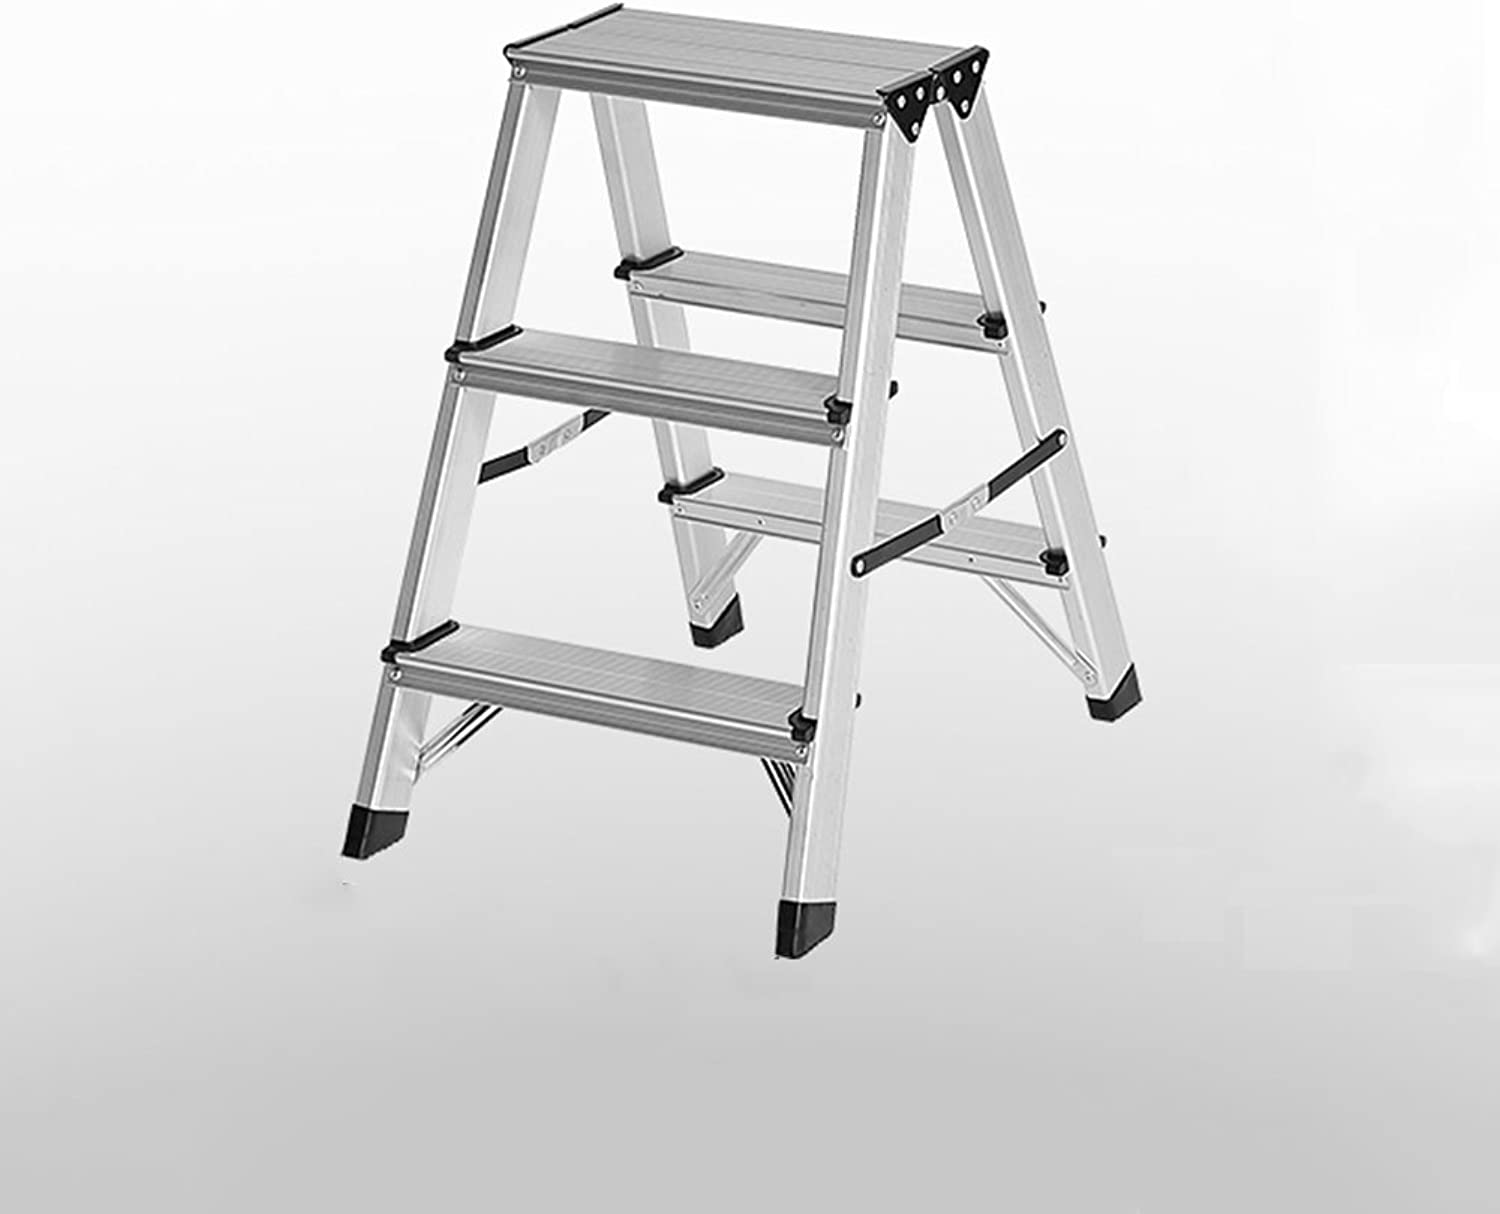 PENGFEI Folding Ladder Stools Stairs Multifunction Home Kitchen Ascend Footstool Pedal Easy Storage 2 3 4 Steps Aluminum Alloy Furniture (color   3 Steps)